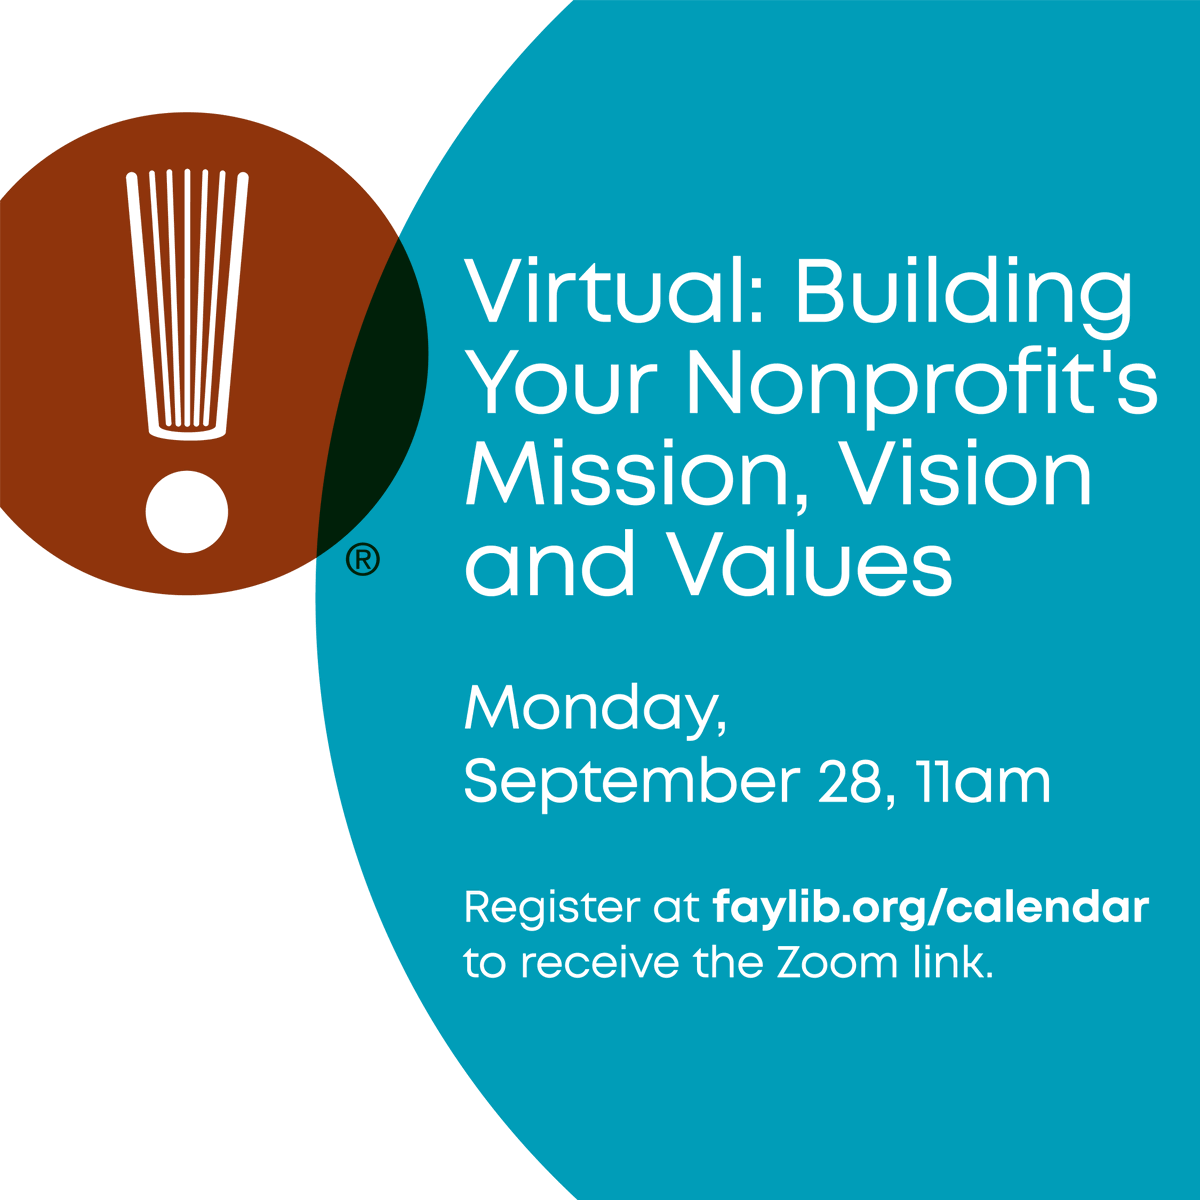 On Monday, September 28th at 11:00 a.m. Kim Aaron will lead a virtual workshop on the uniqueness and intersection of a nonprofit's mission, vision and values, and the significance of each to an organization's operations.  To register for the Zoom, visit